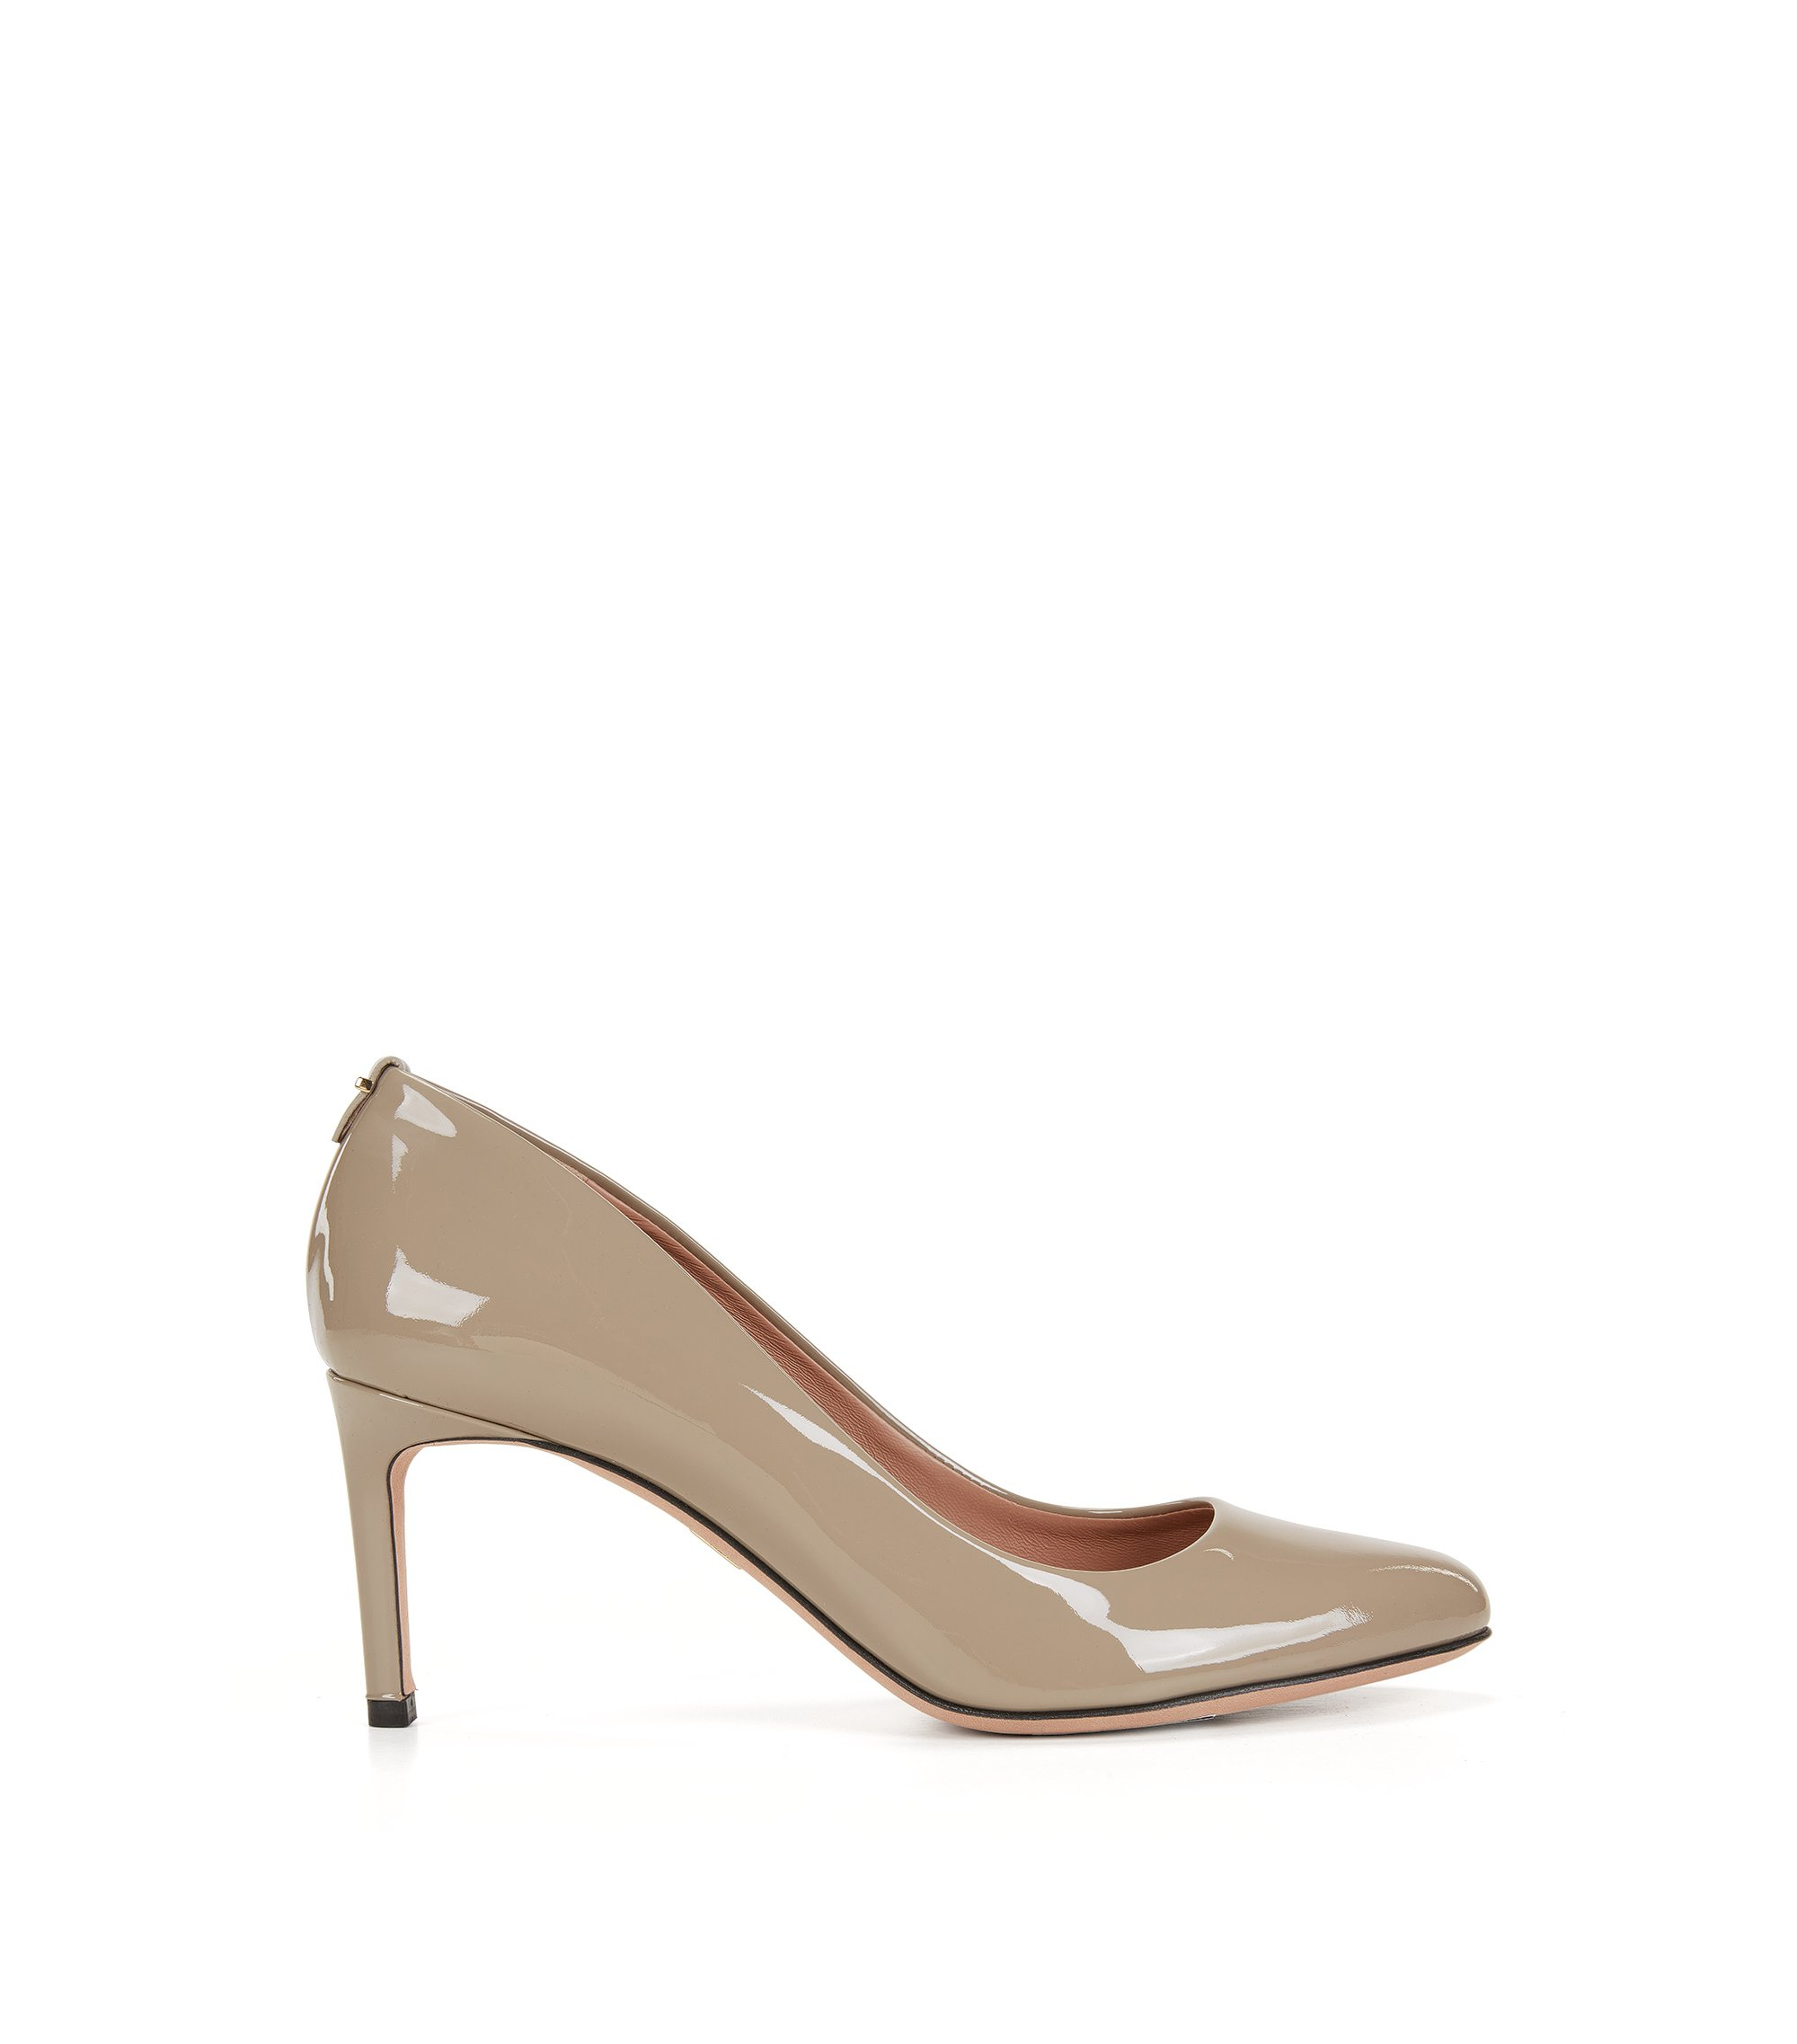 Escarpins BOSS Luxury Staple en cuir italien verni , Beige